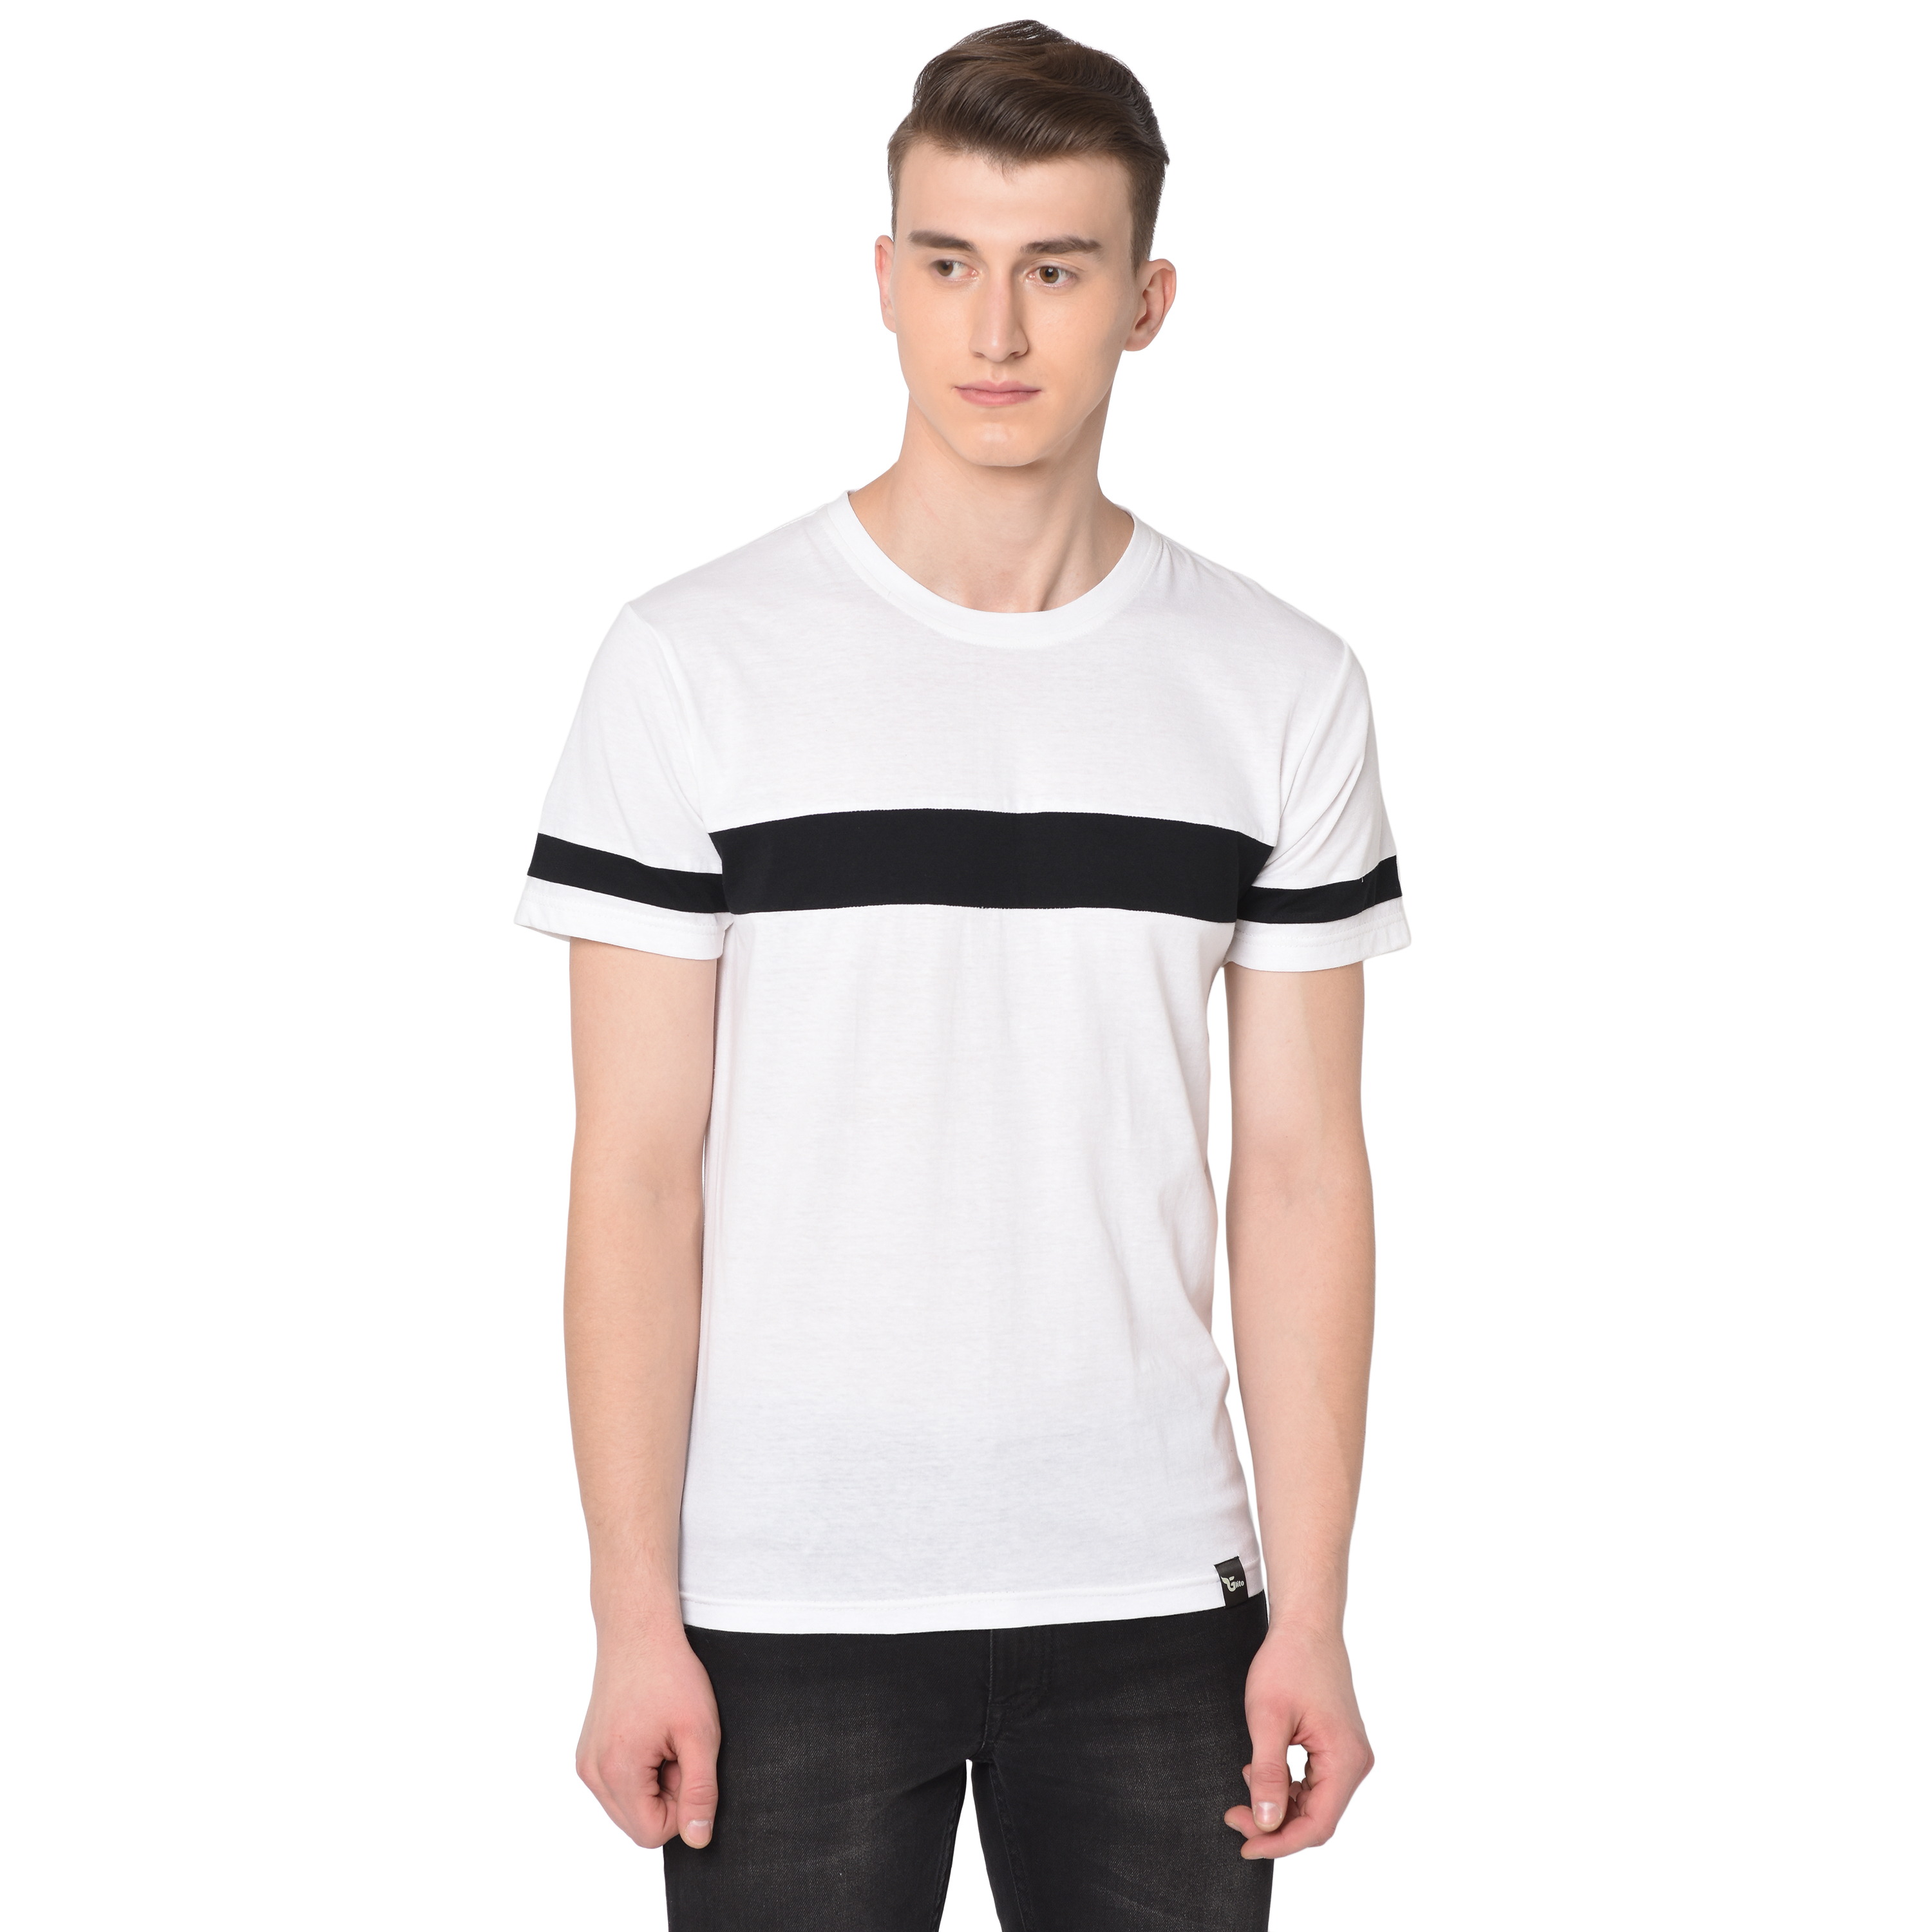 Glito  Men's Half Sleeves Round Neck Slim Fit  Cotton 2 Units Combo  T-Shirt With Black & White Color